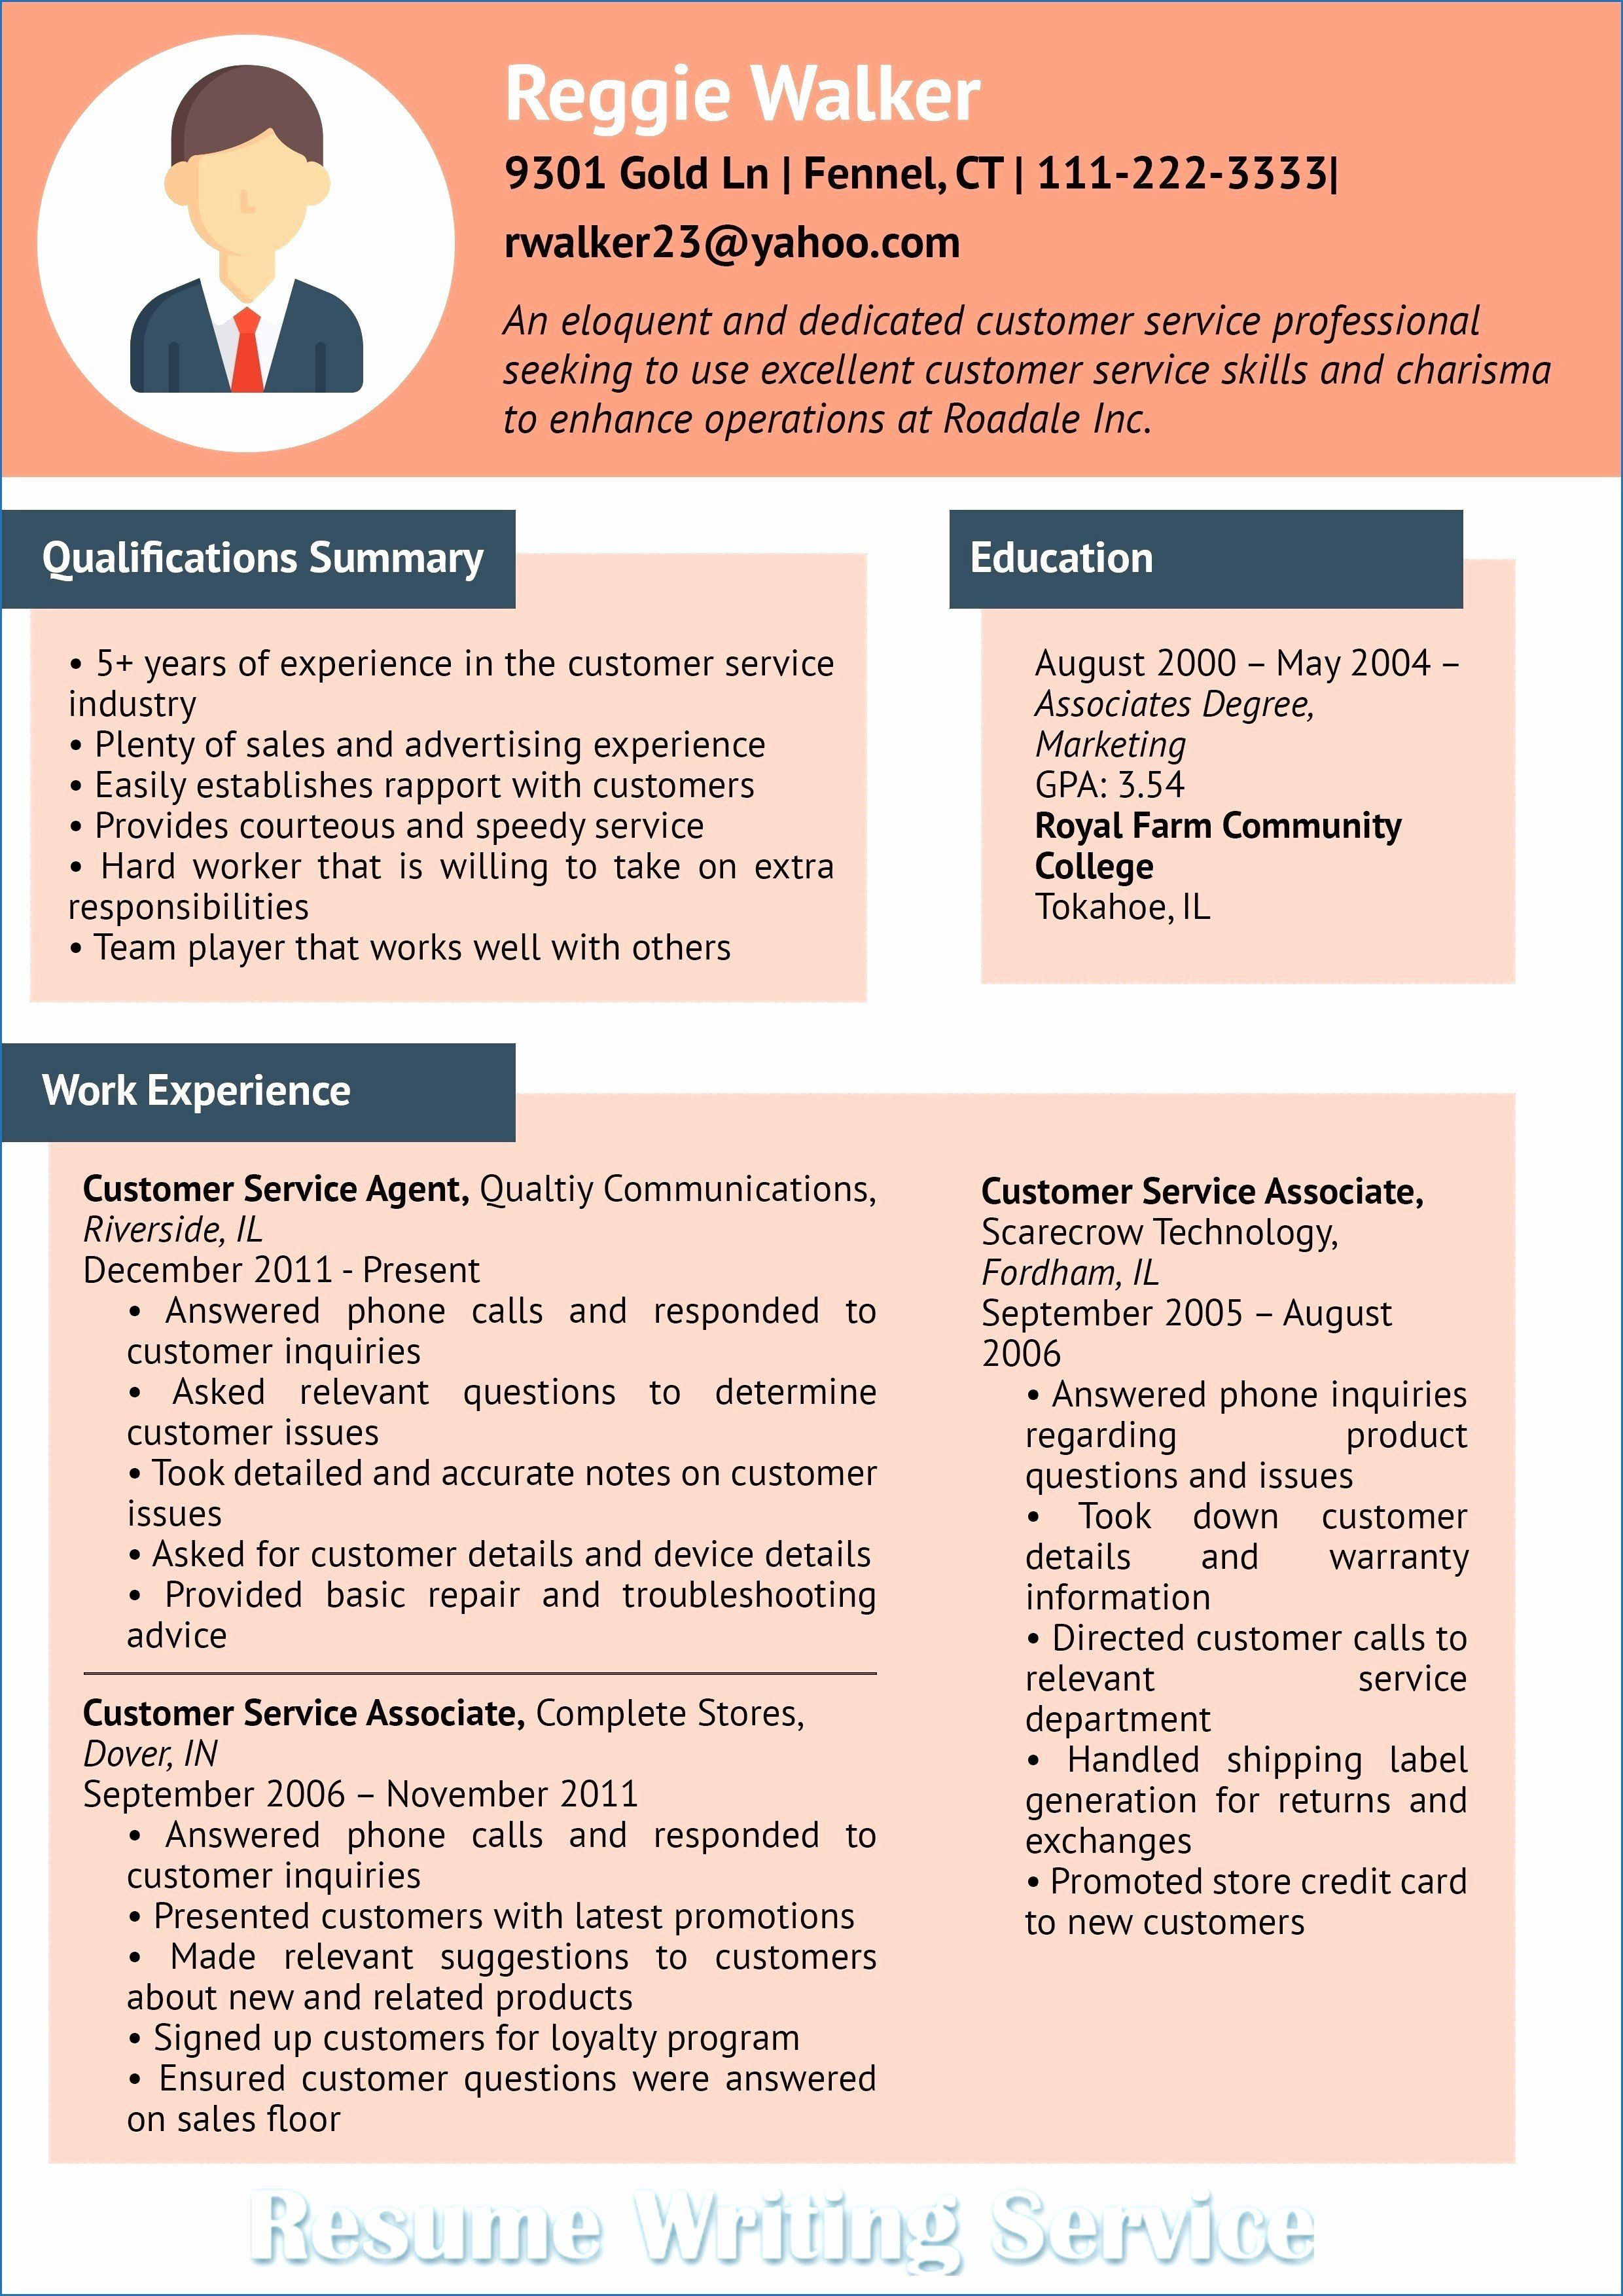 32 lovely resume summary examples for sales in 2020 best